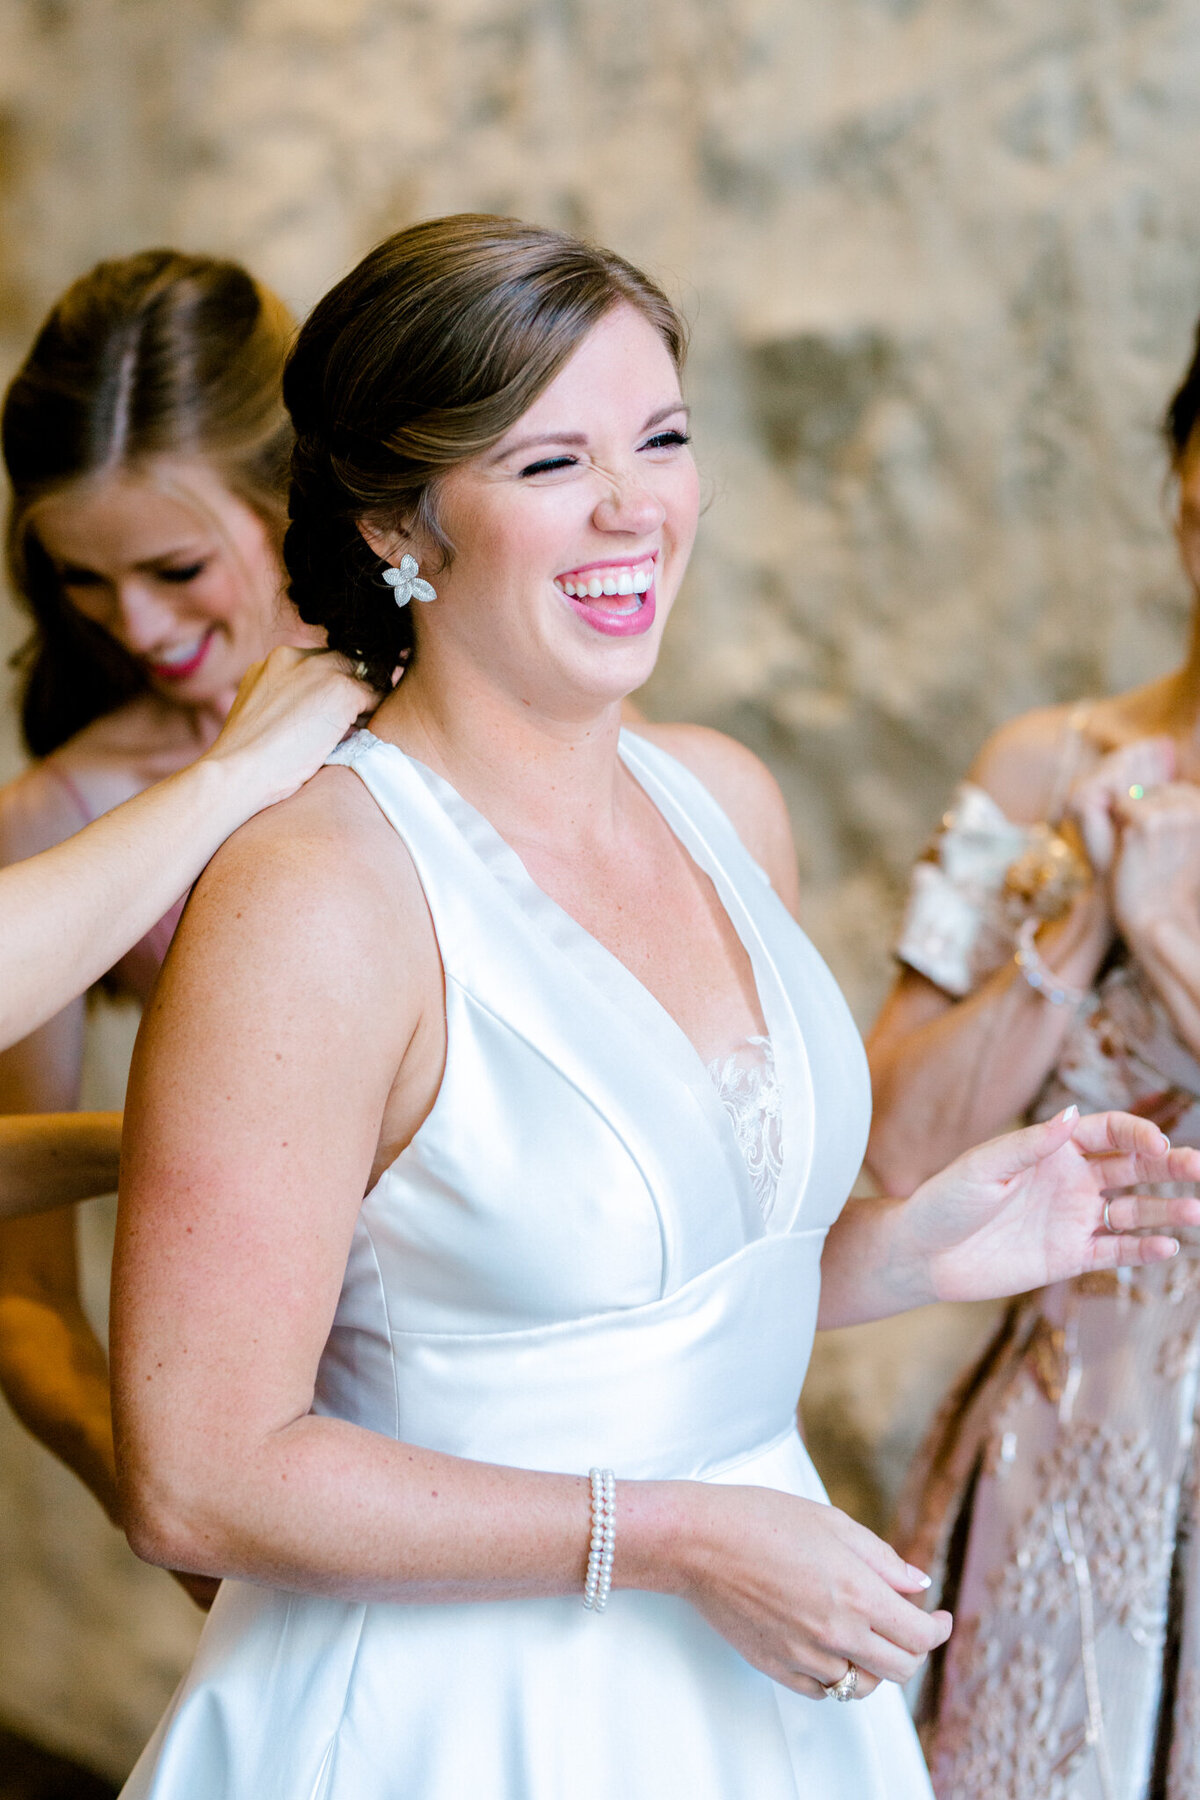 Kaylee & Michael's Wedding at Watermark Community Church | Dallas Wedding Photographer | Sami Kathryn Photography-19